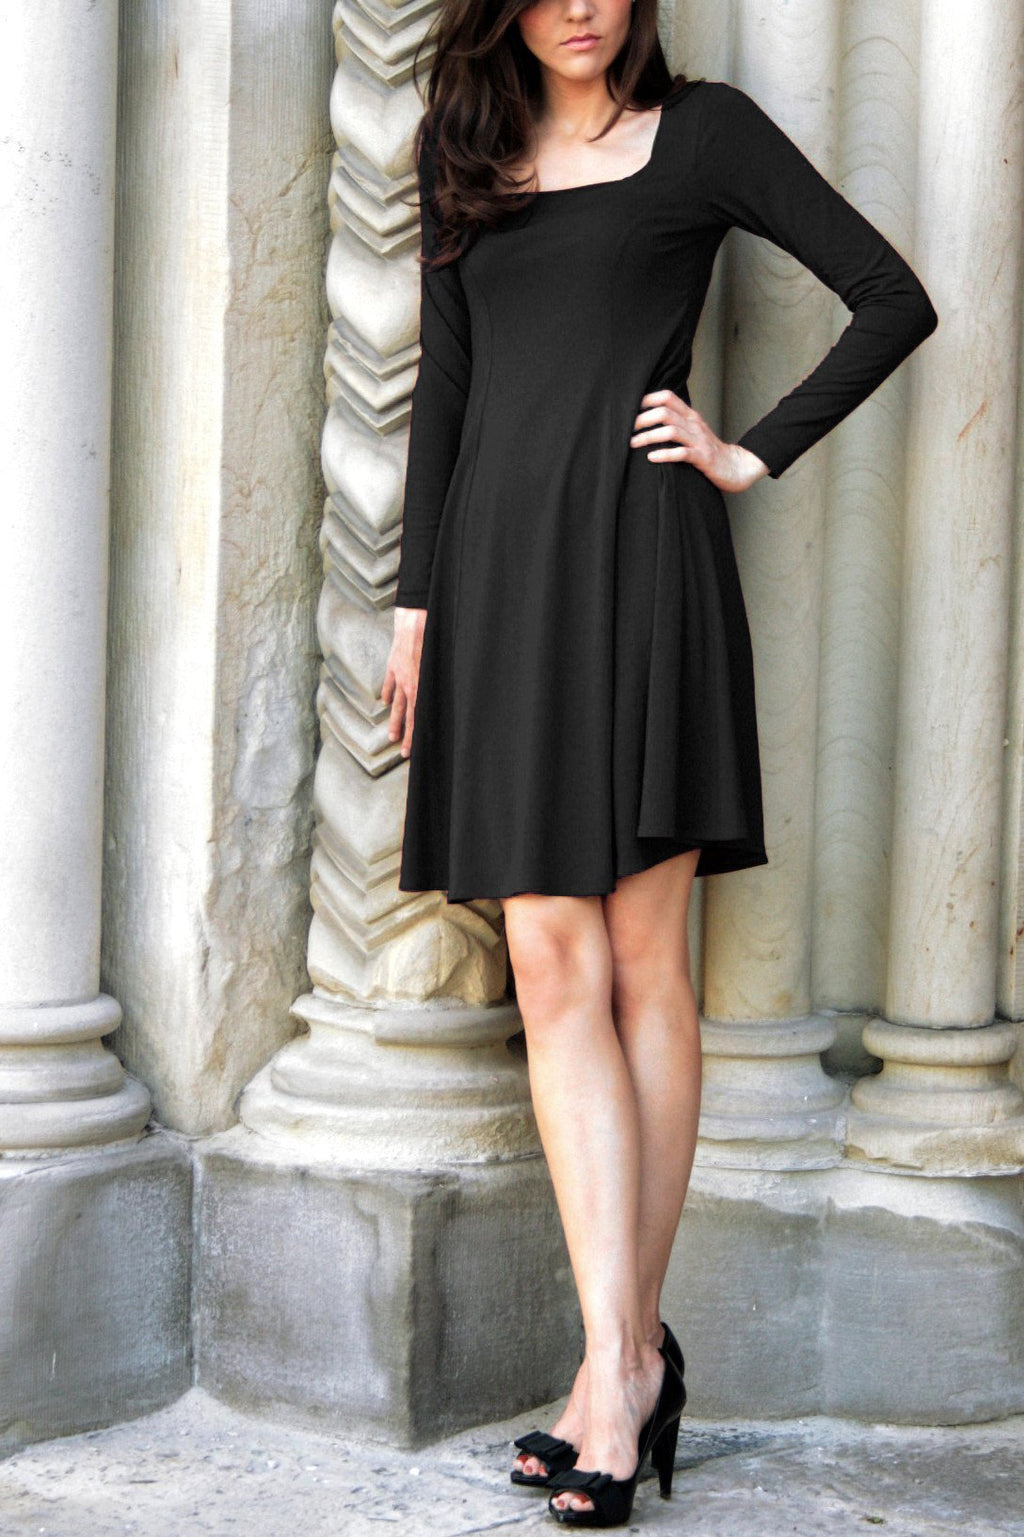 Marion black long sleeve babydoll dress for adult women. Flowy dress with long sleeve.